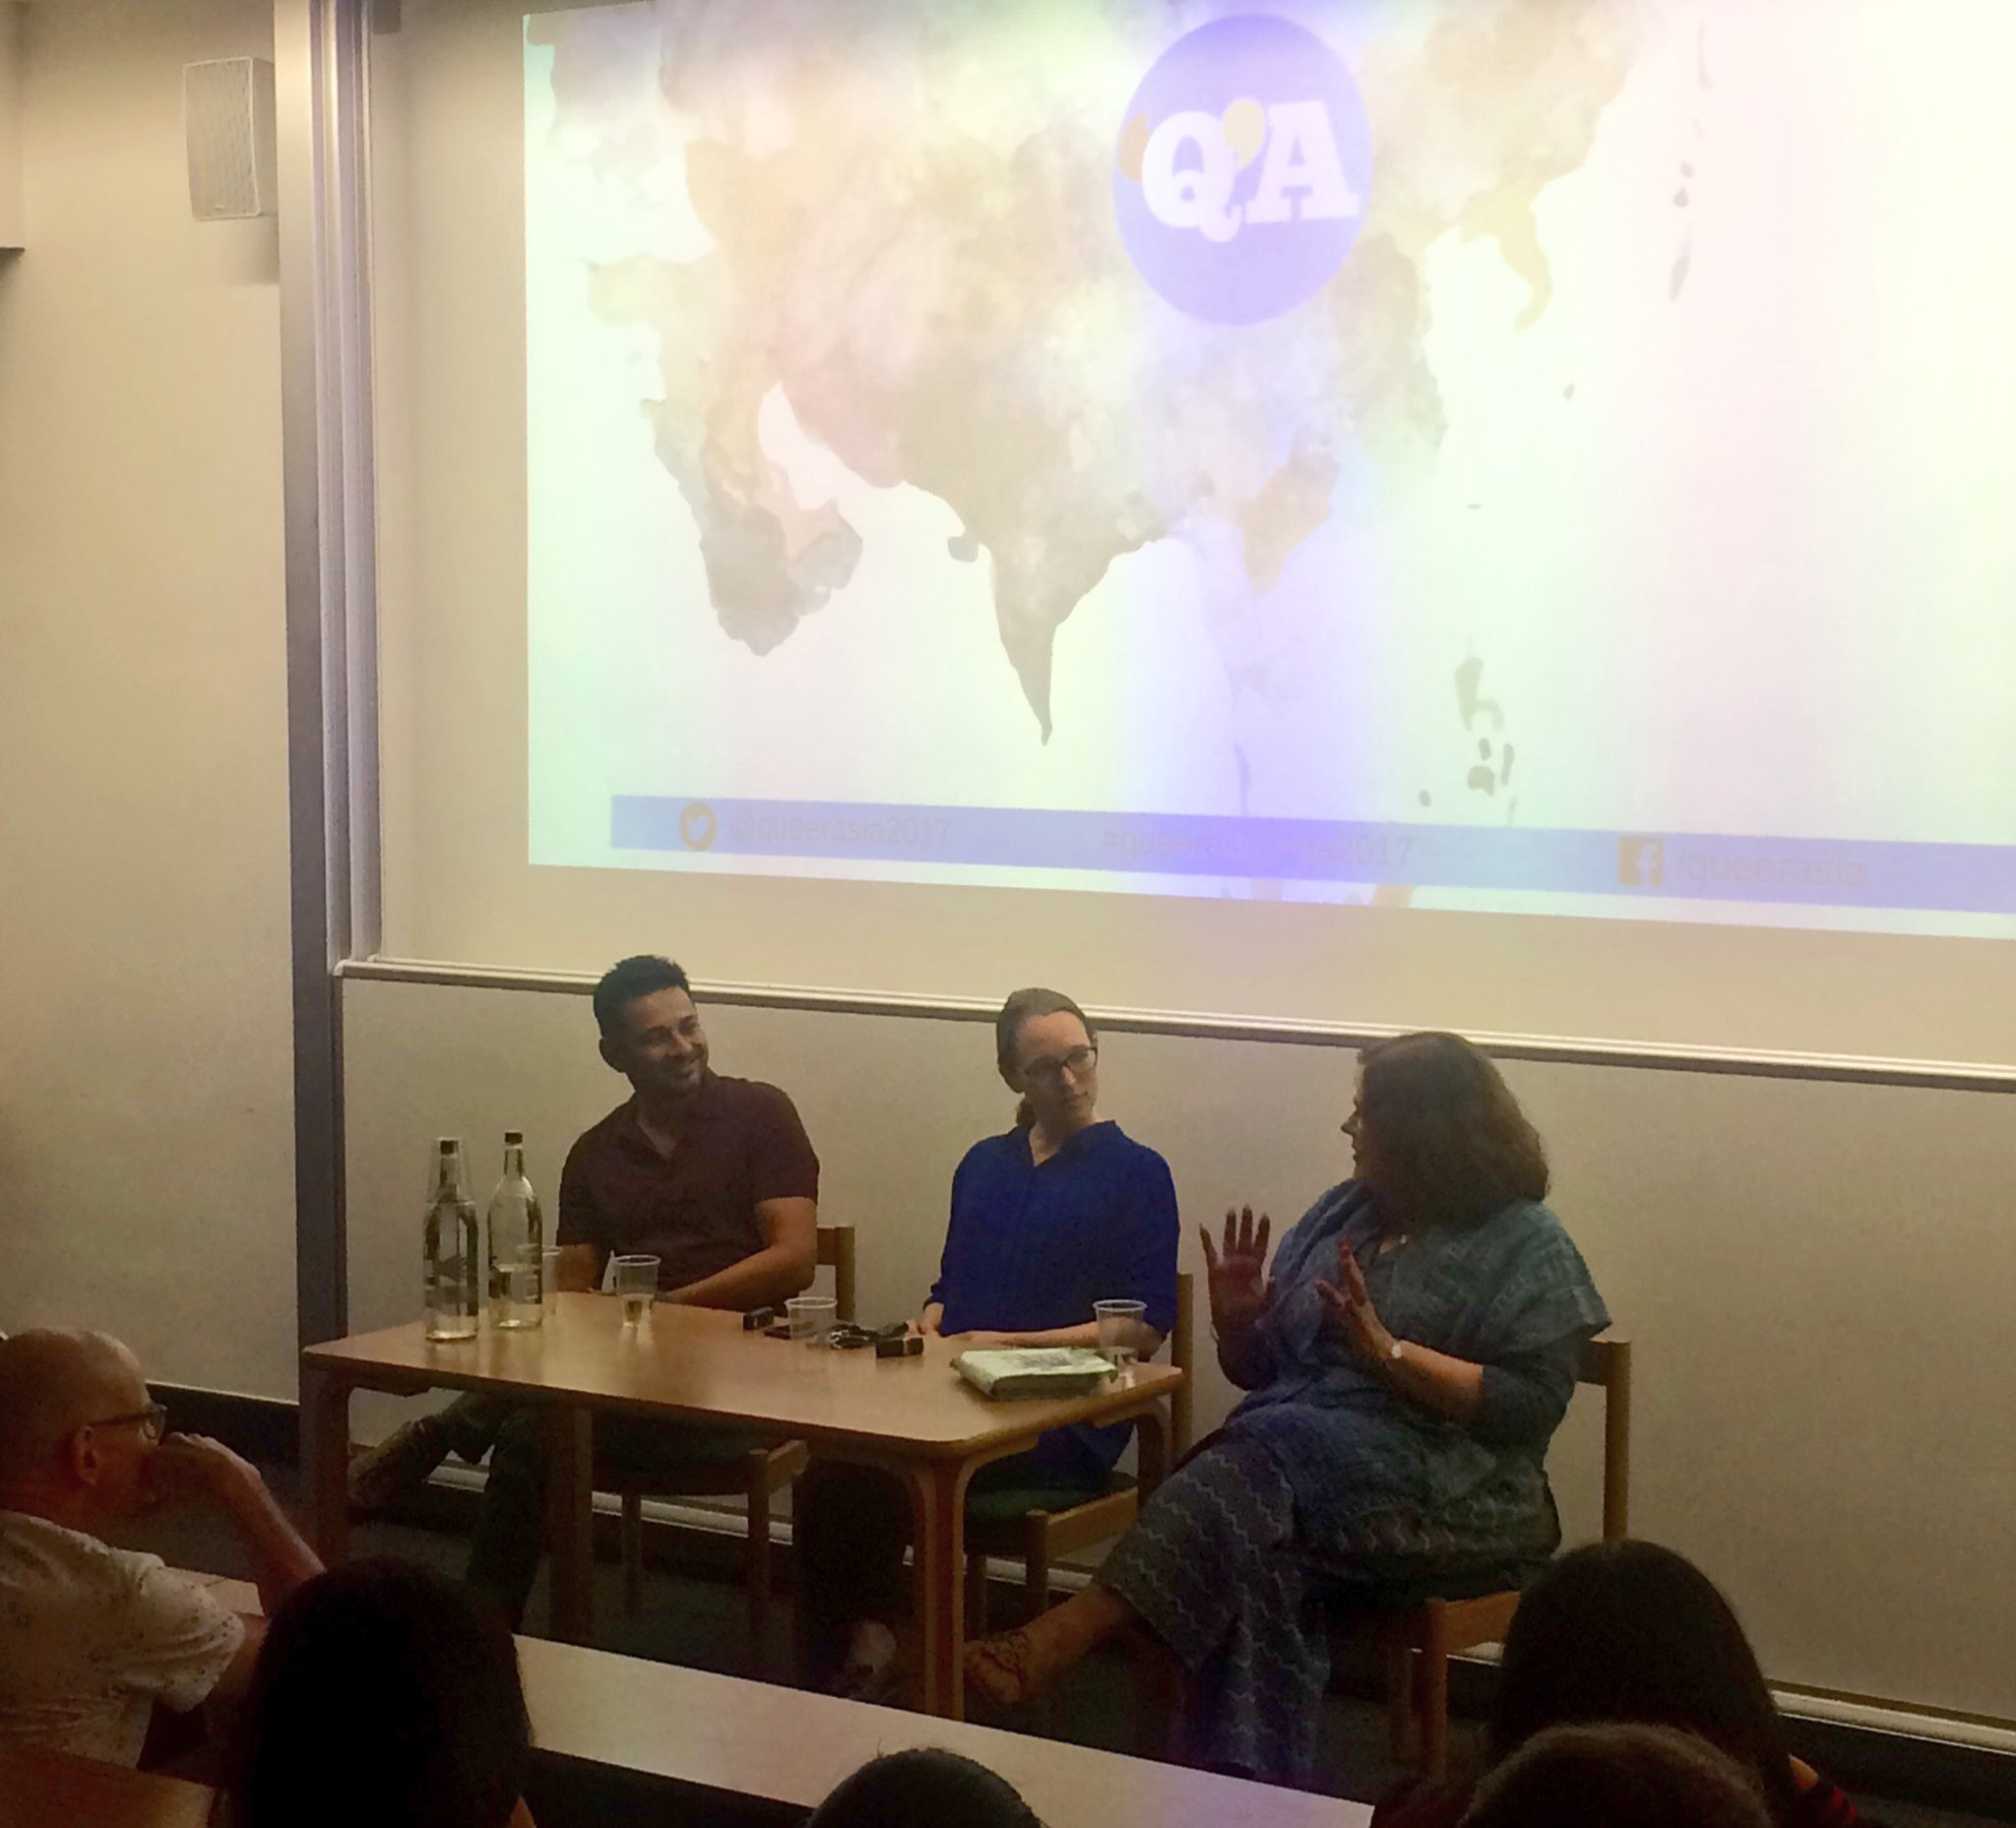 @RachelMJDwyer Apurva Asrani @queerasia2017 in @UCLIndiaVoices discussing the powerful film #Aligarh! #qaff #qa17 https://t.co/NhKX3oYQQs